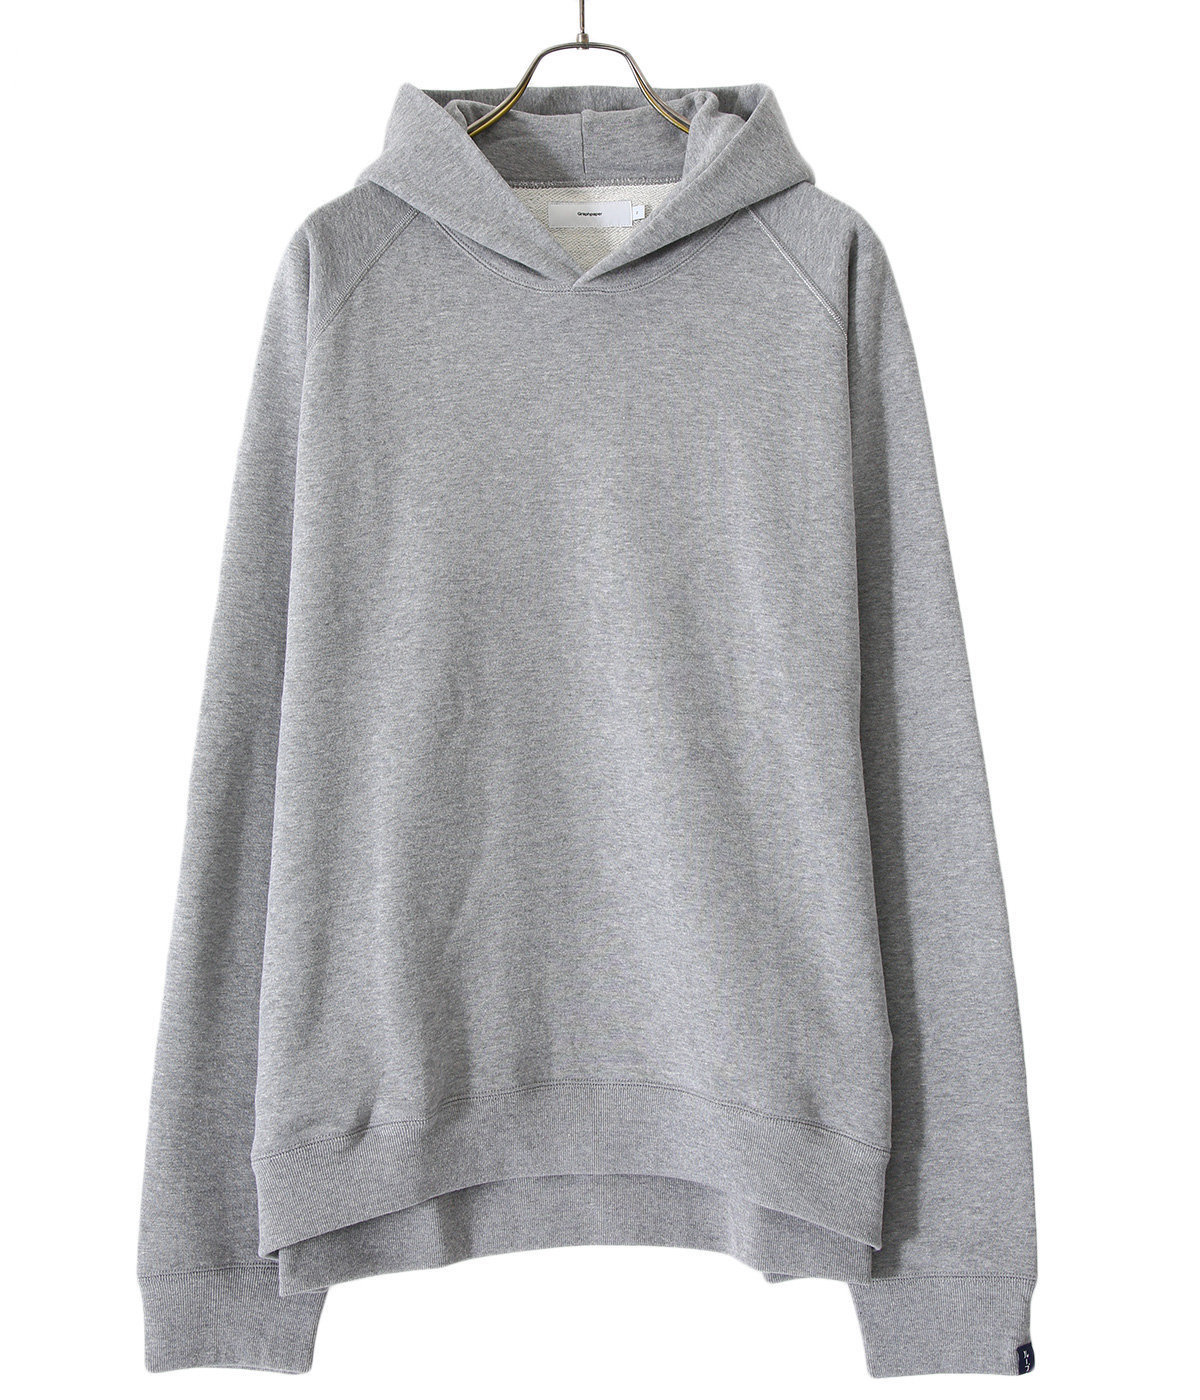 【ONLY ARK】別注 LOOPWHEELER for GP Sweat Parka